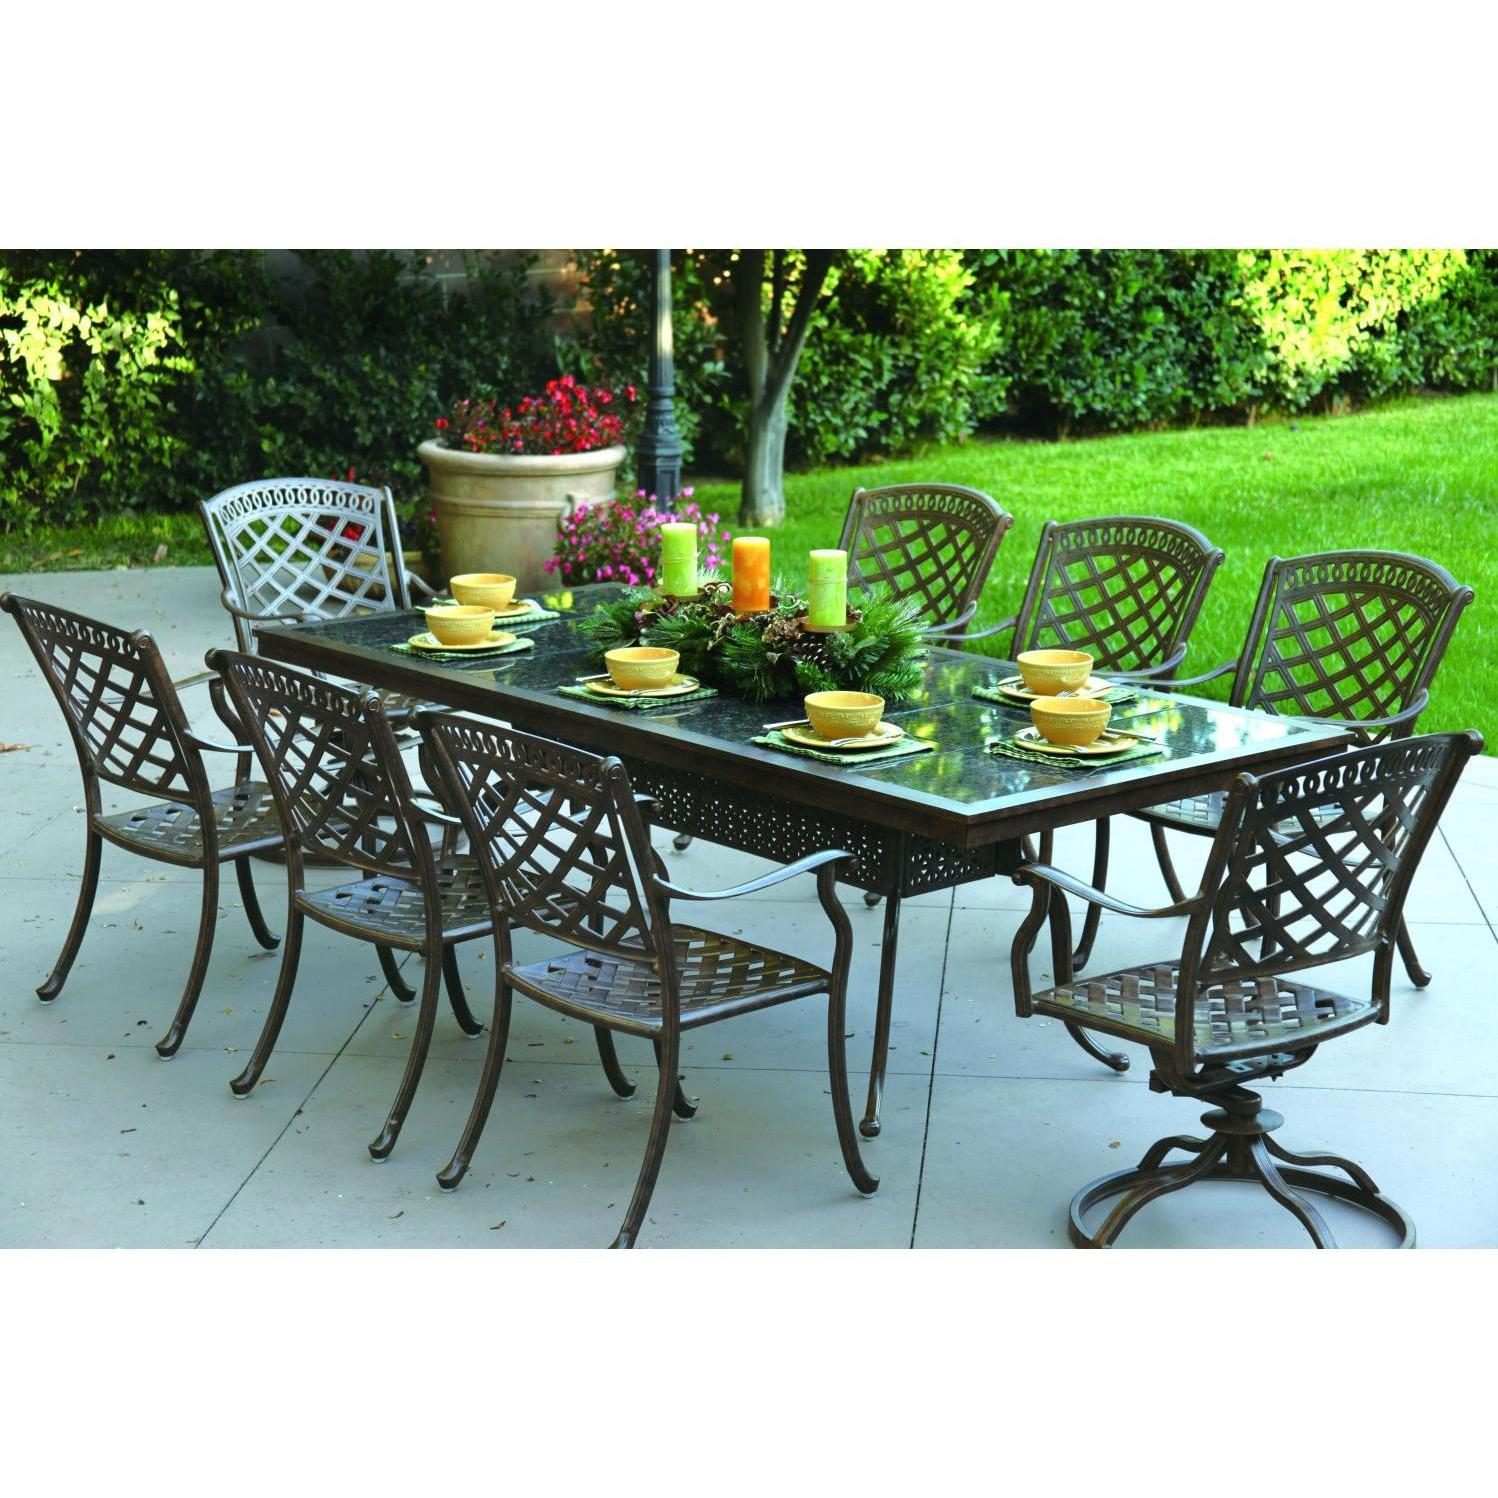 9 Piece Outdoor Dining Set Darlee Sedona 9 Piece Cast Aluminum Patio Dining Set With Rectangular Granite Top Table Mocha Brown Granite Tile